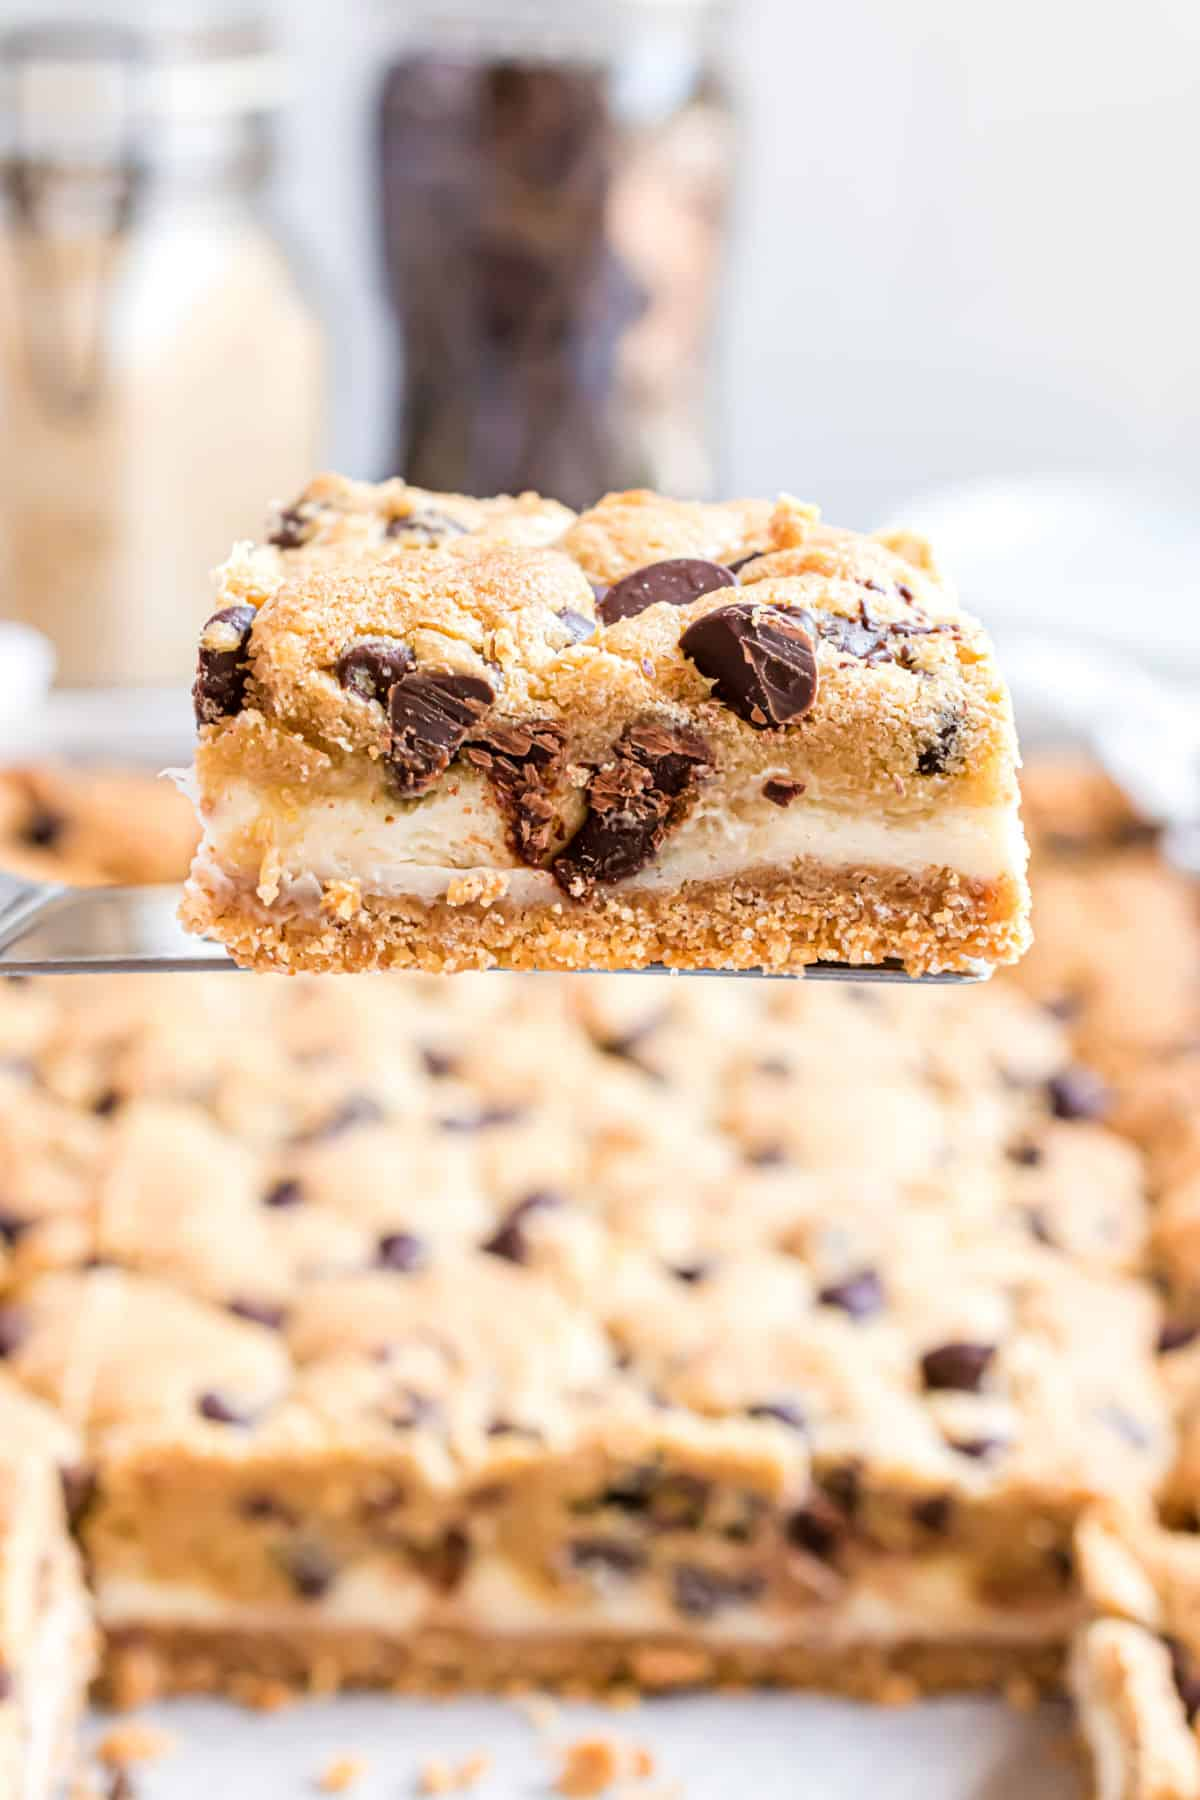 Chocolate chip cheesecake bar on a spatula being removed from pan.